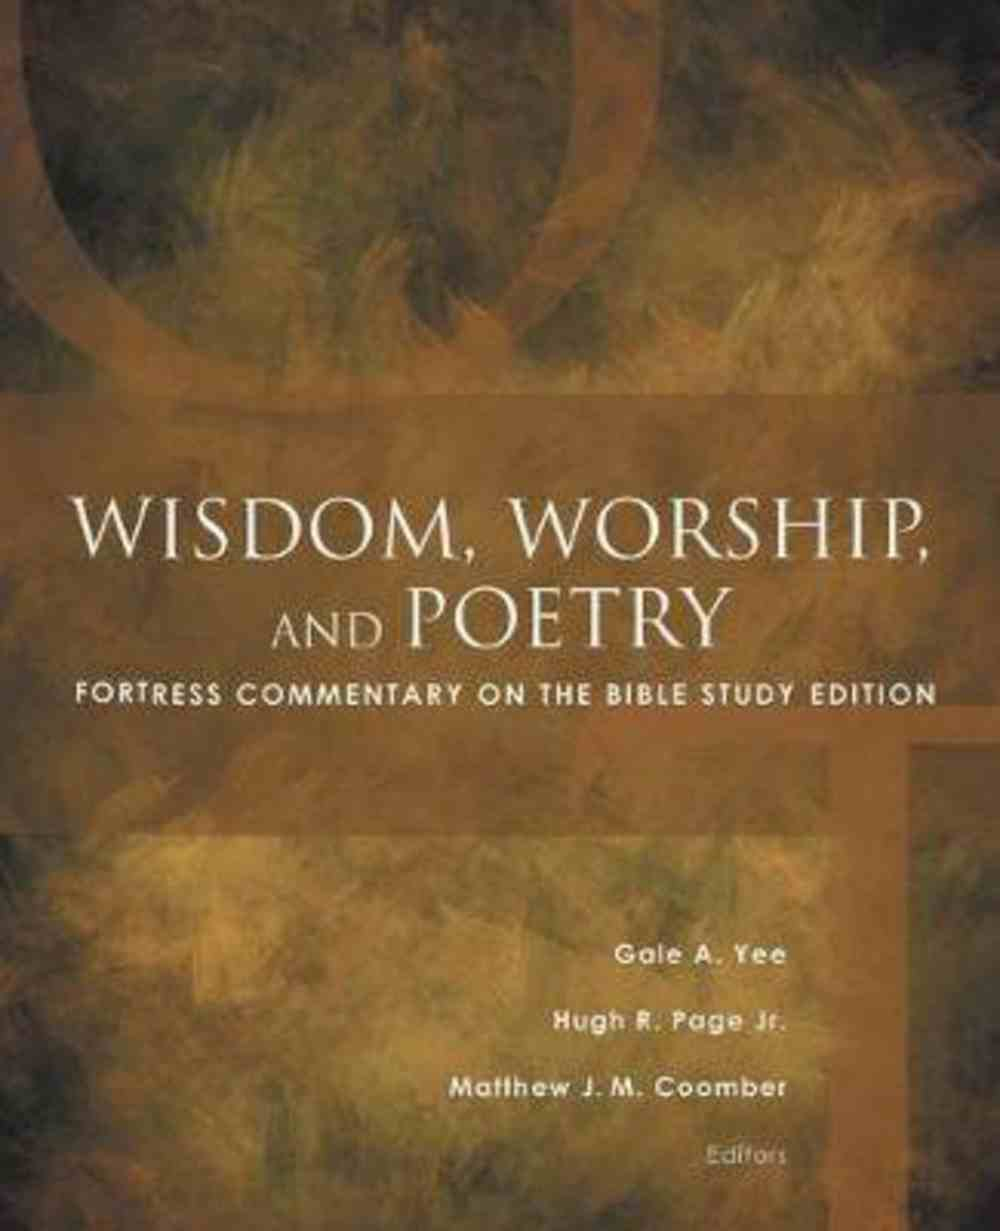 Wisdom, Worship, and Poetry (Fortress Commentary On The Bible Series) Paperback